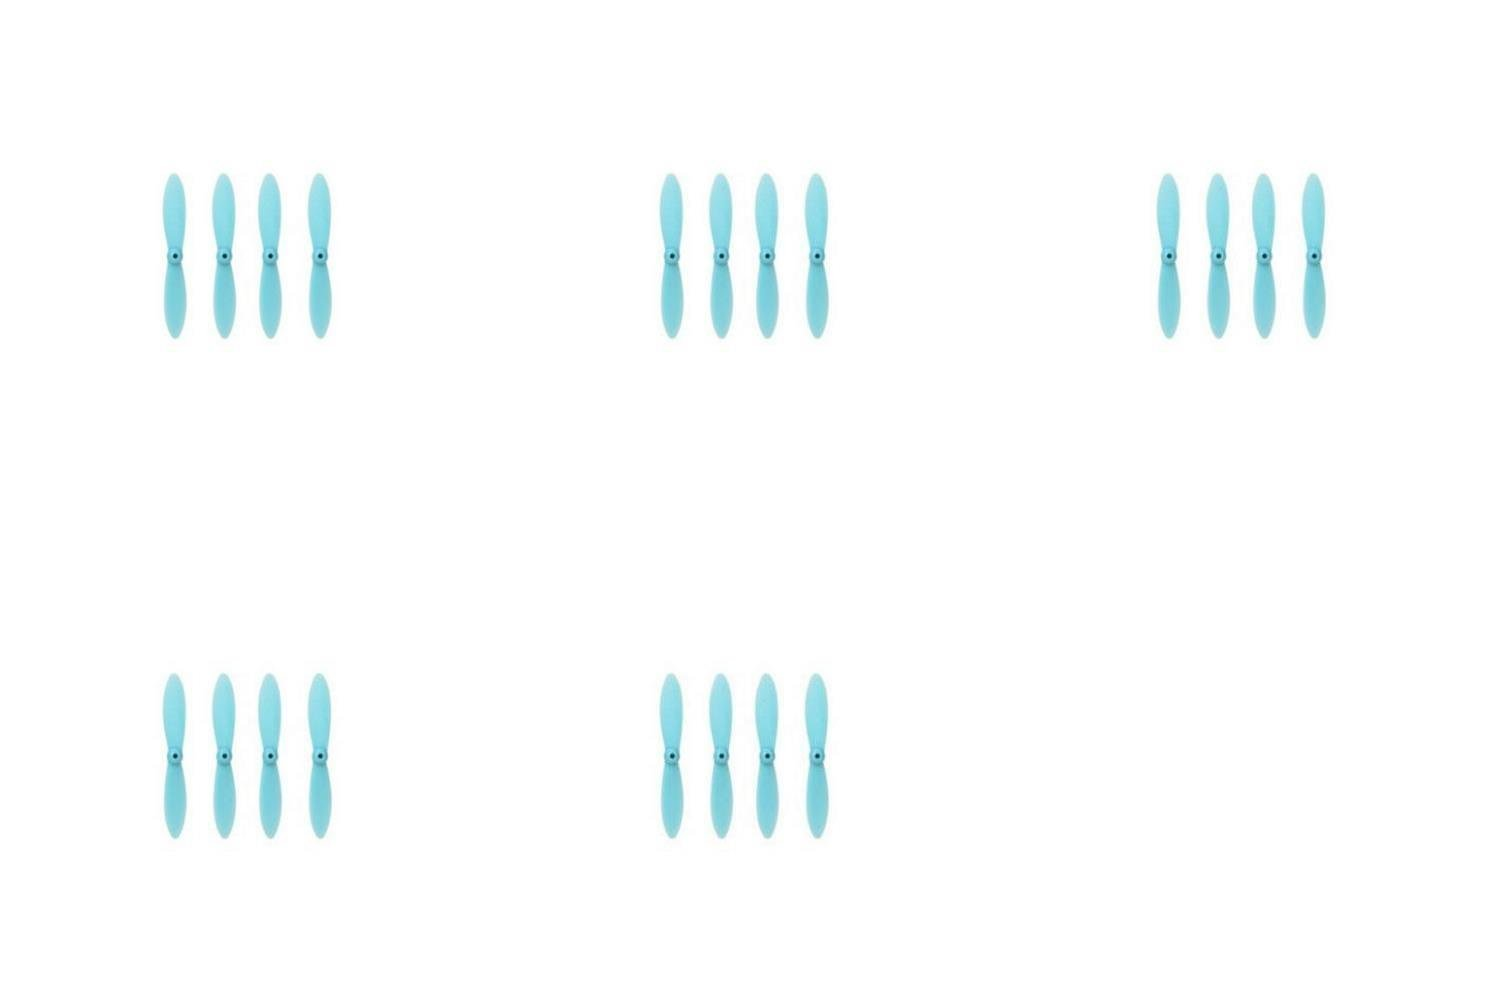 preferente 5 x Quantity of WLtoys V272 All Blue Nano Quadcopter Quadcopter Quadcopter Propeller blade Set 32mm Propellers Blades Props Quad Drone parts - FAST FROM Orlando, Florida USA  protección post-venta